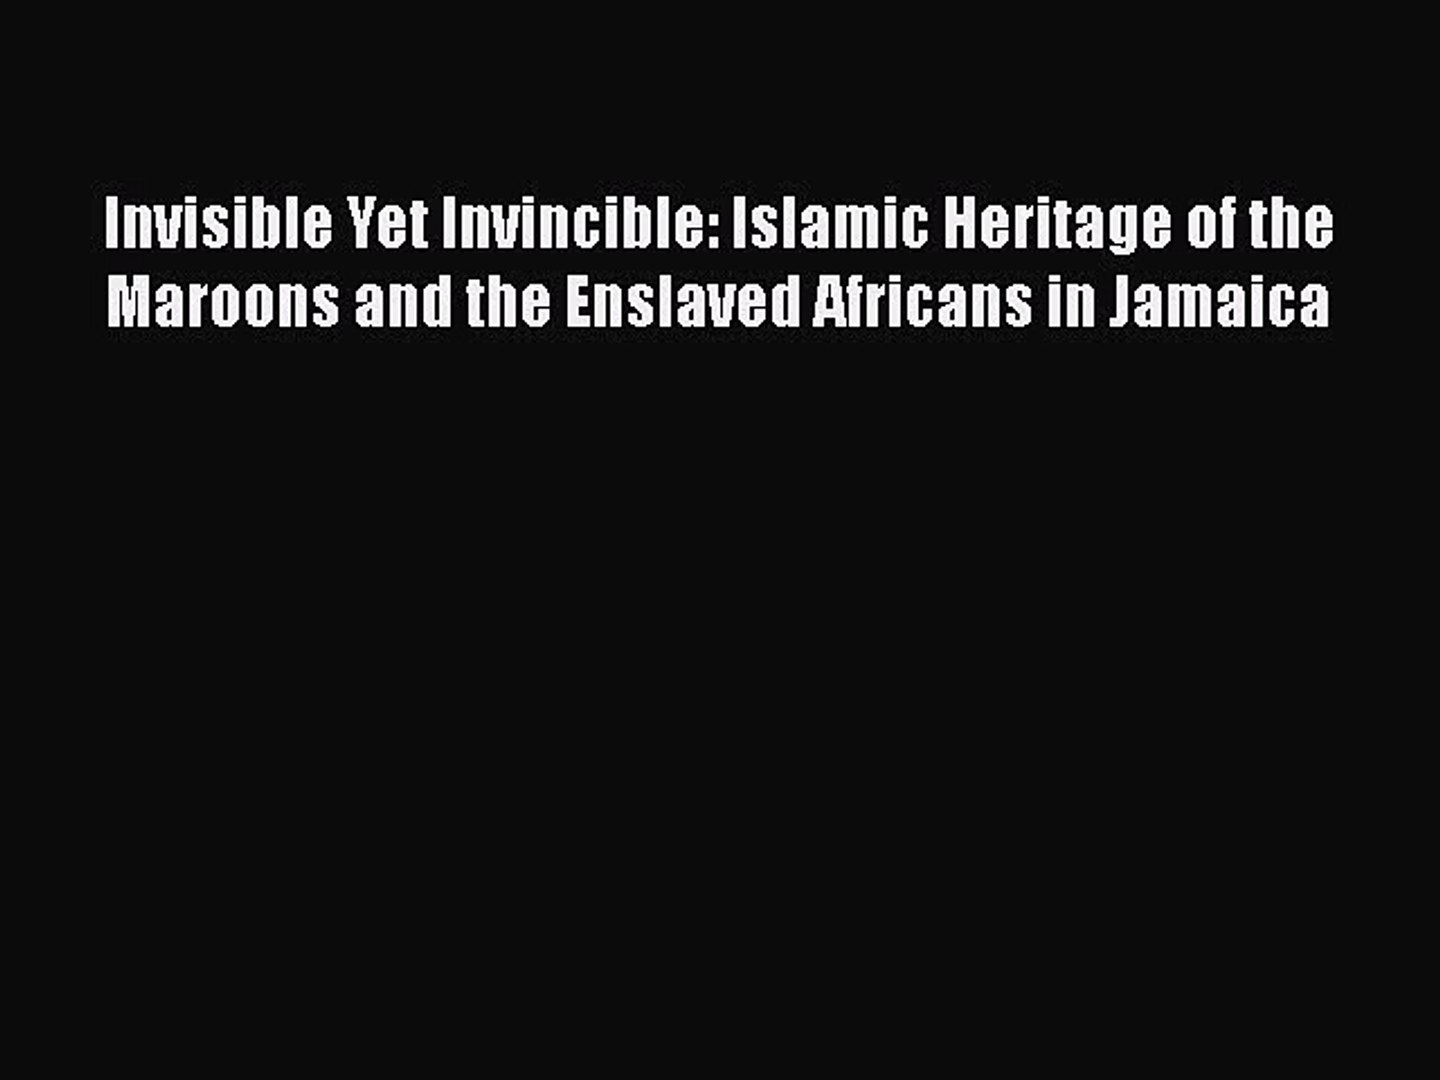 [PDF] Invisible Yet Invincible: Islamic Heritage of the Maroons and the Enslaved Africans in